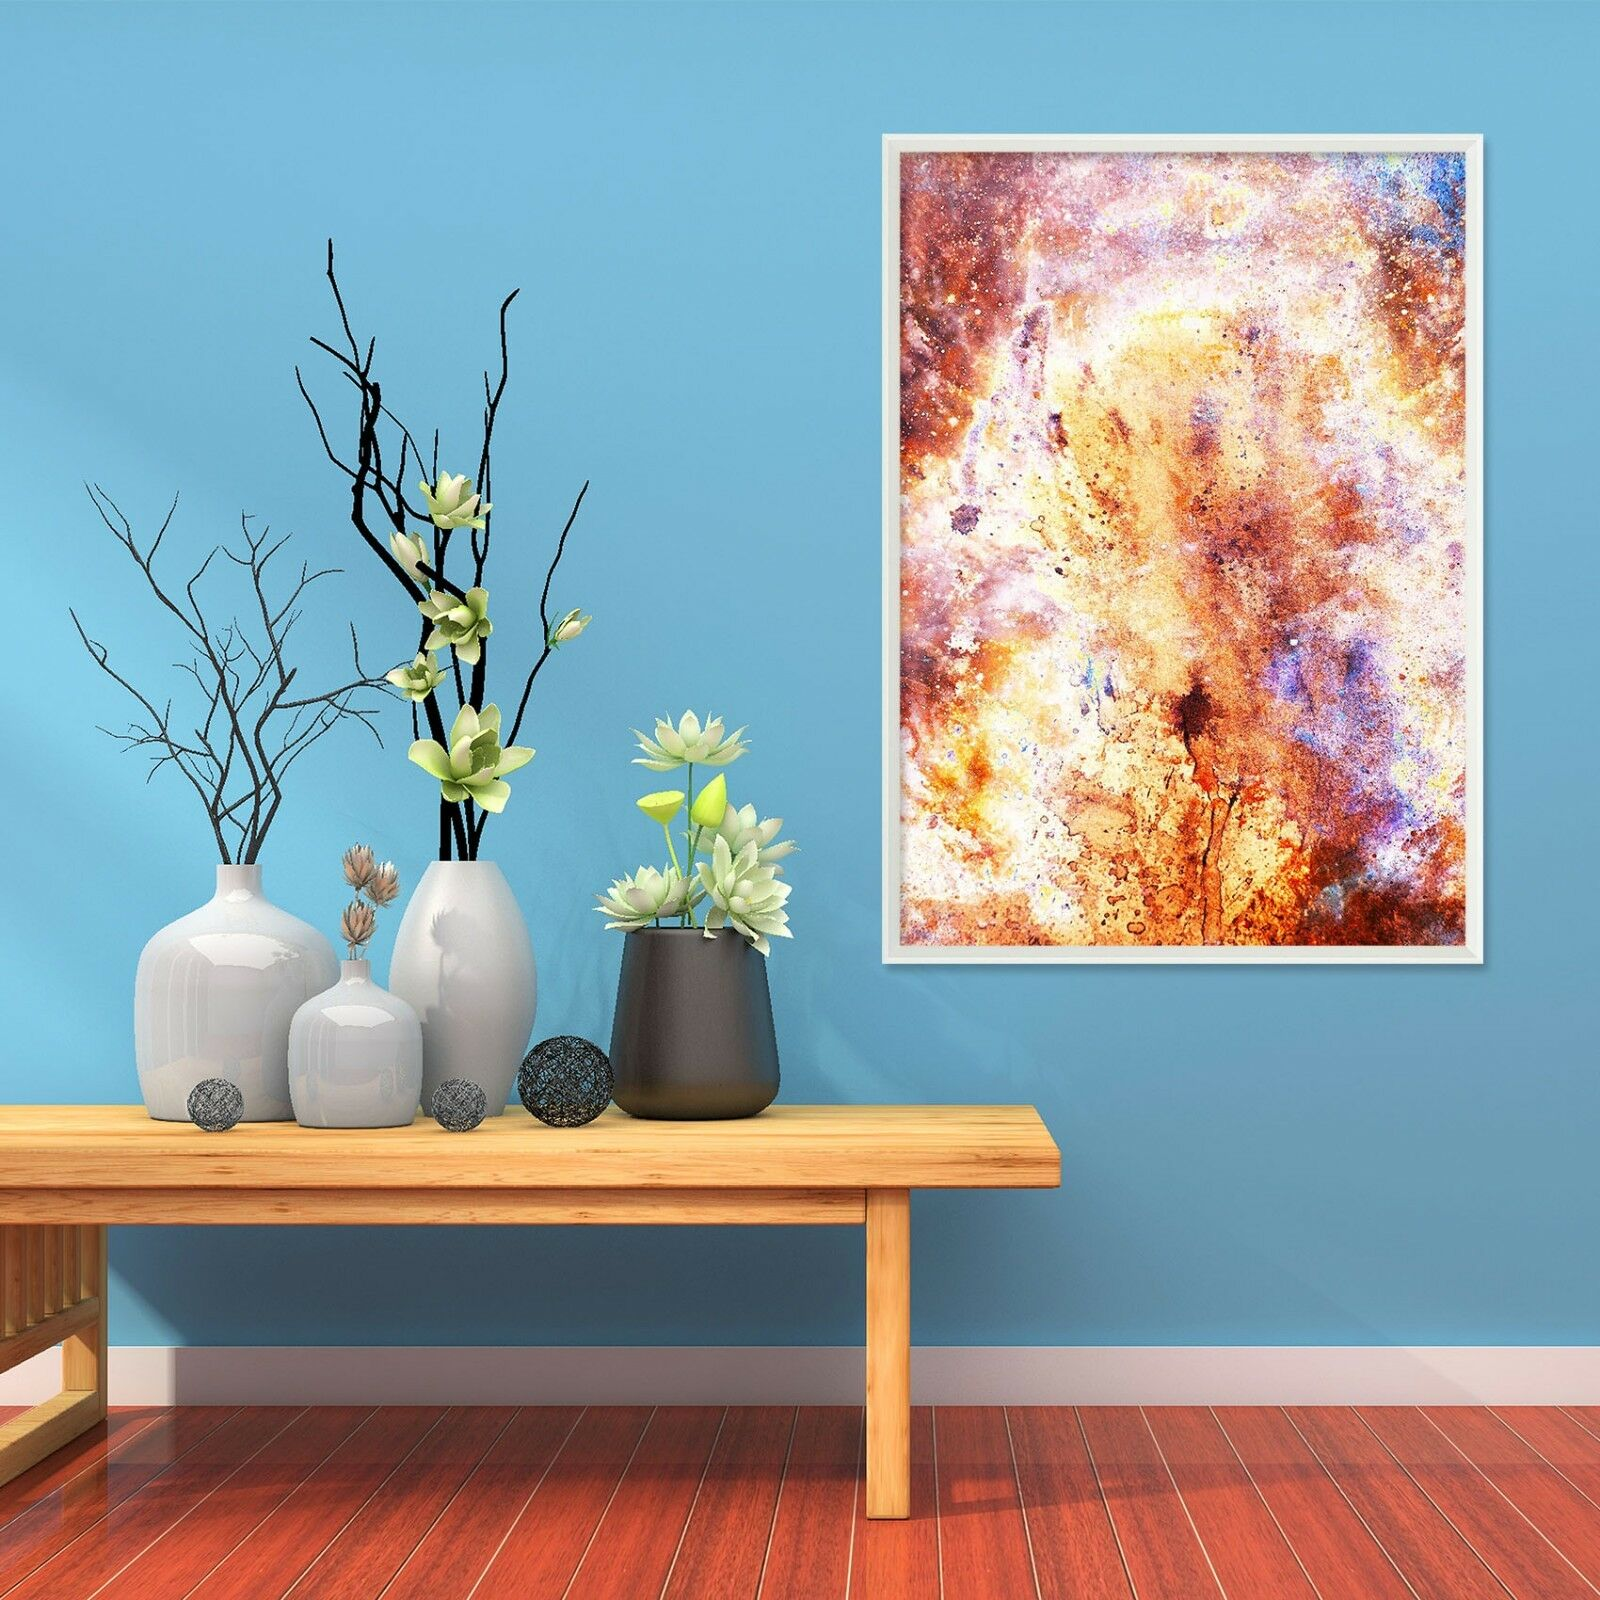 3D Abstract Painting 6 Framed Poster Home Decor Drucken Painting Kunst AJ AU